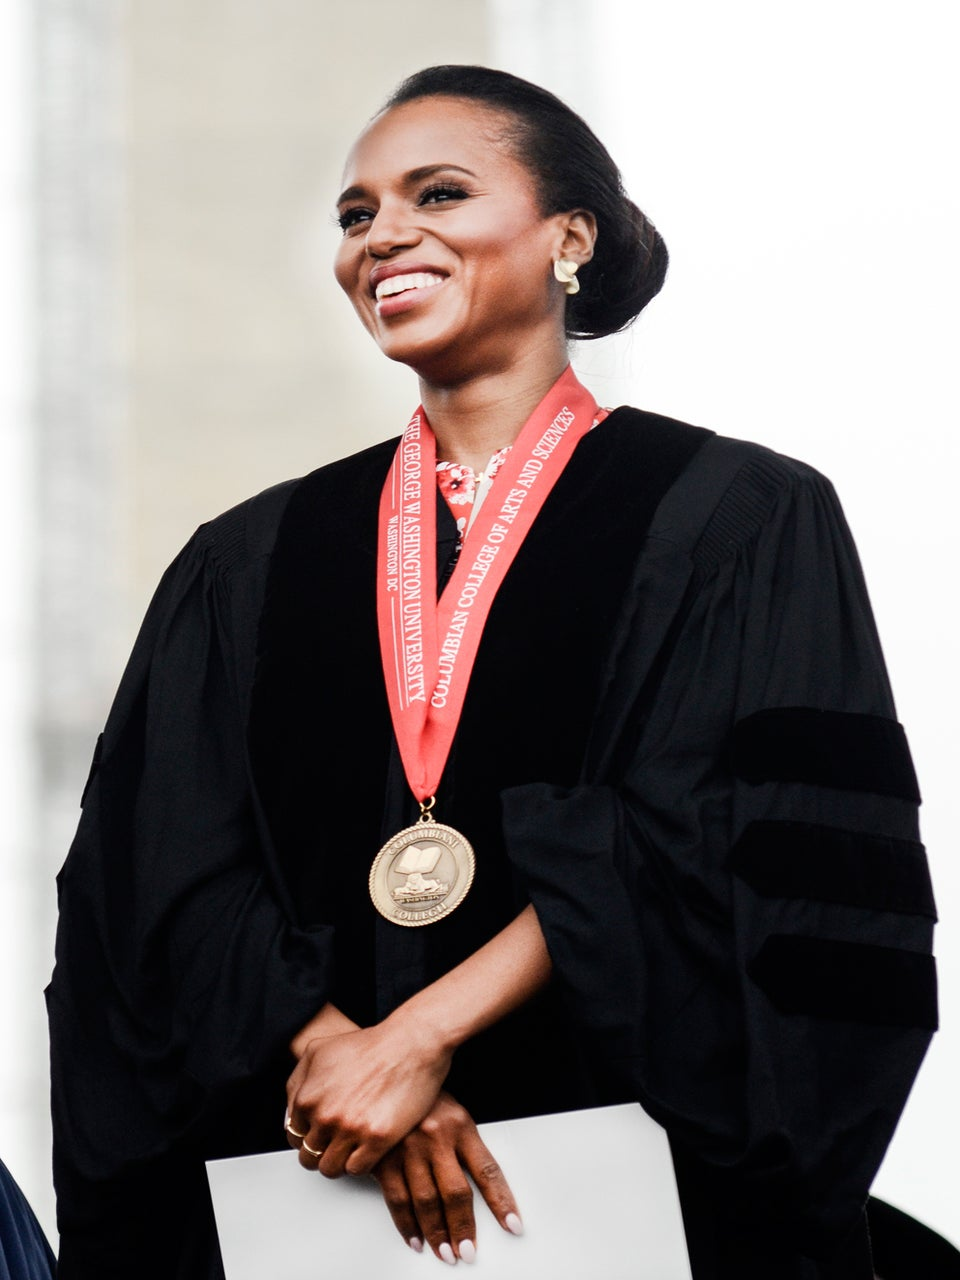 Must-See: Kerry Washington Delivers George Washington University Commencement Speech